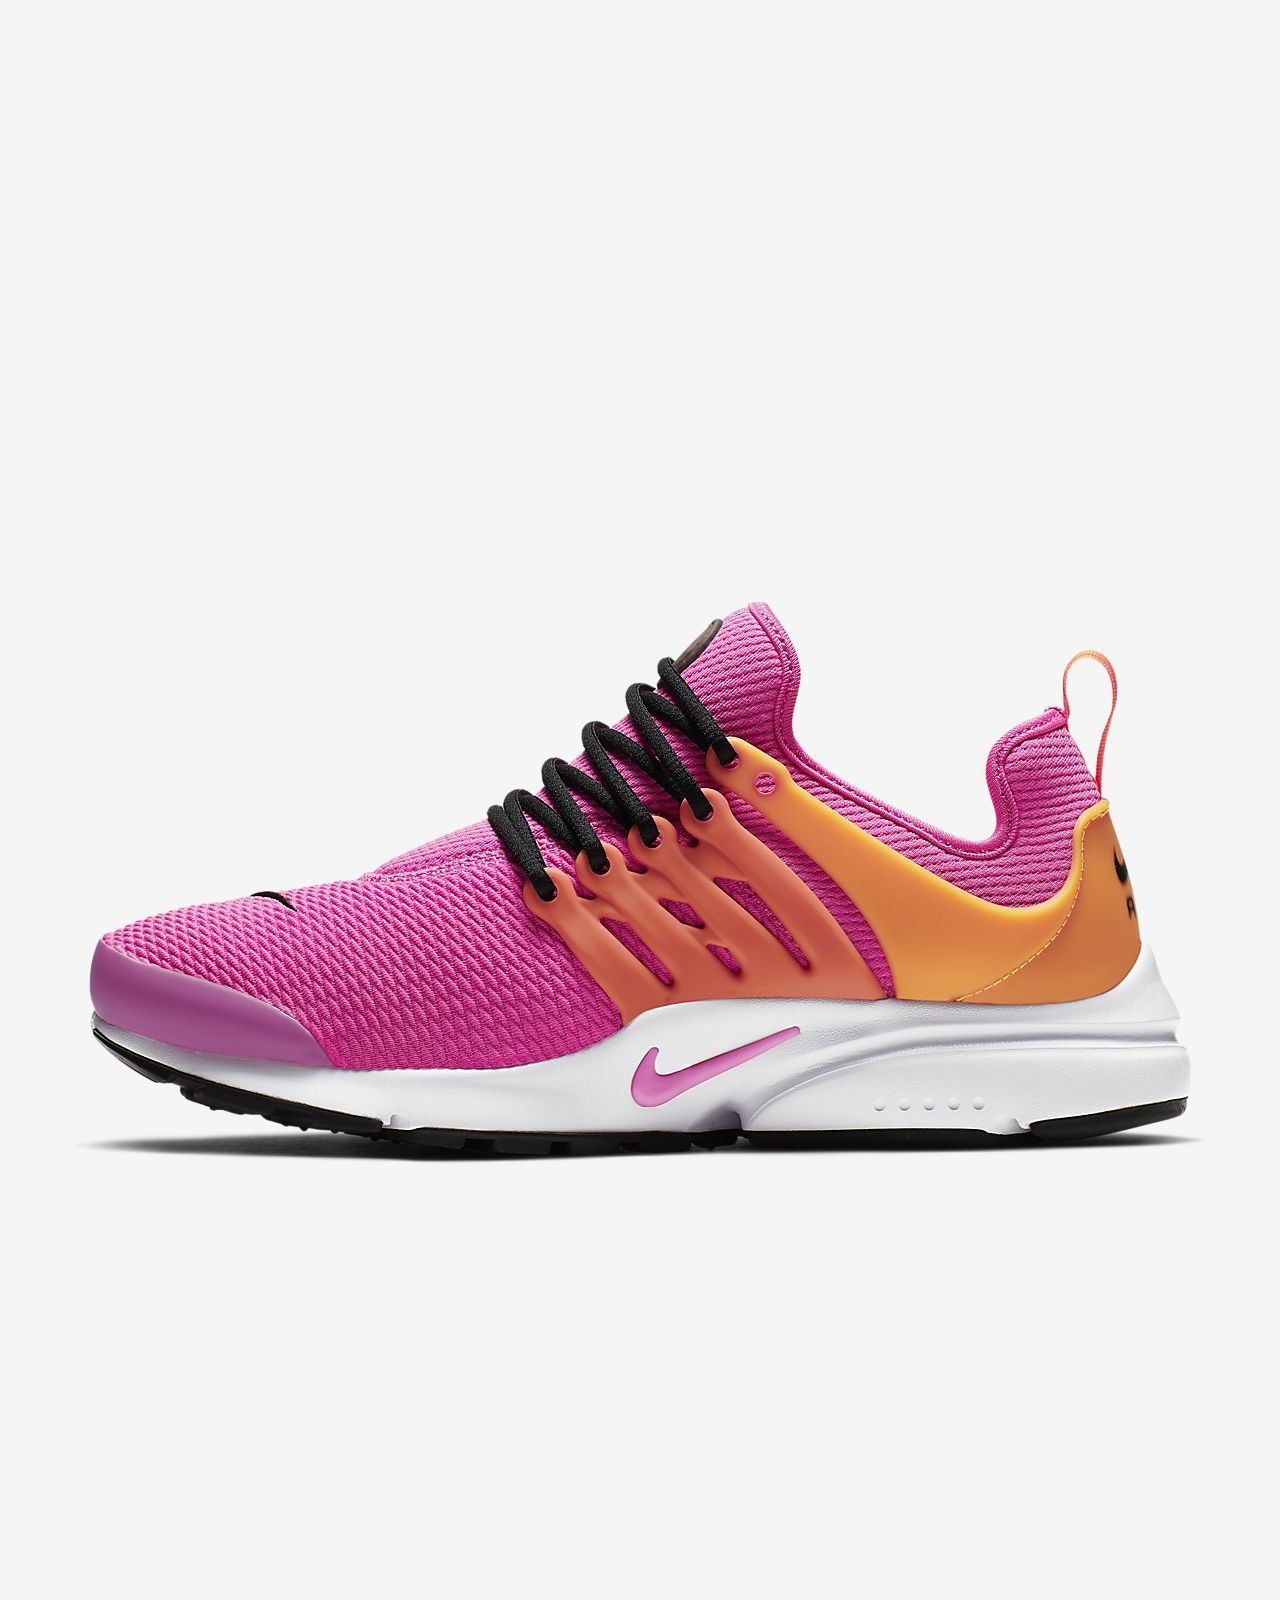 Nike Air Presto Women's Shoe